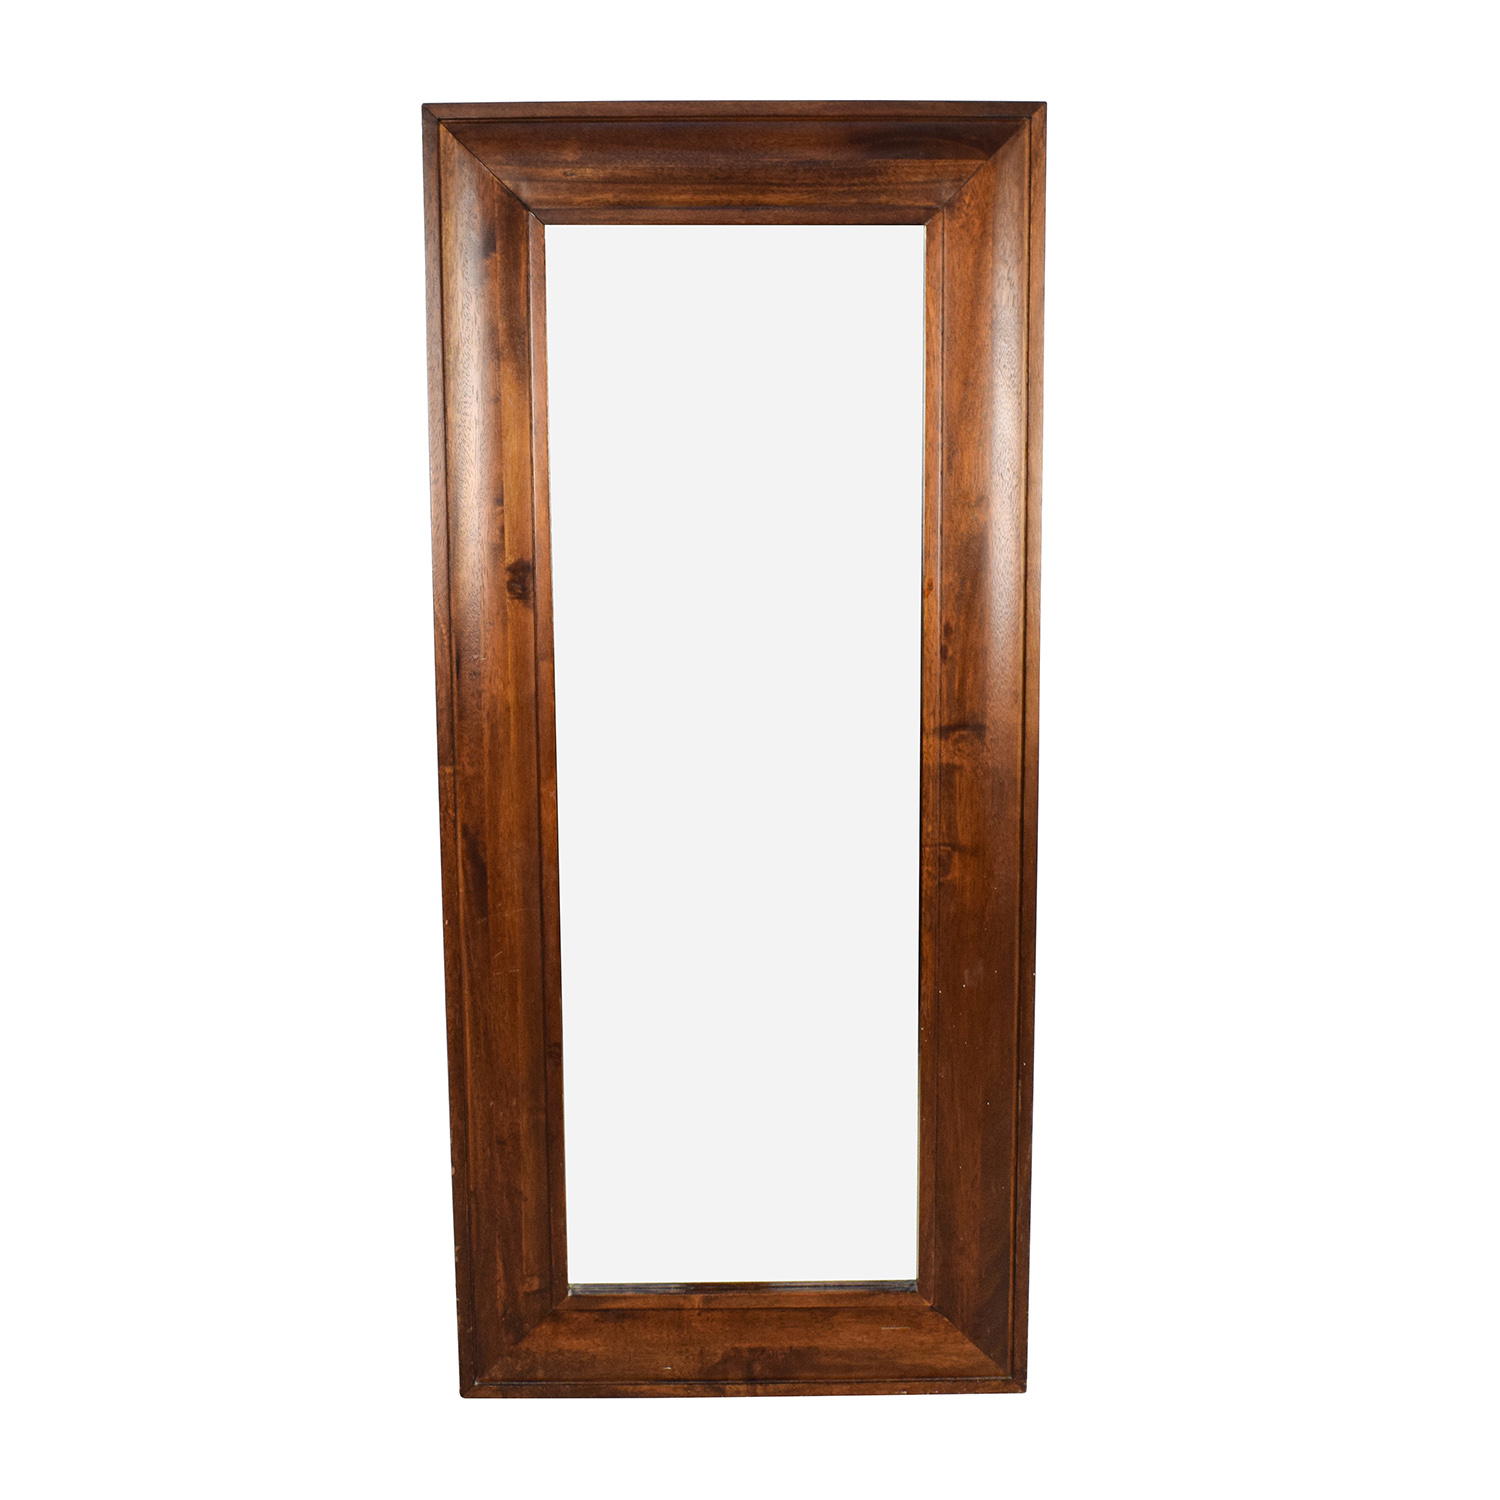 Large Wood Framed Standing Mirror dimensions